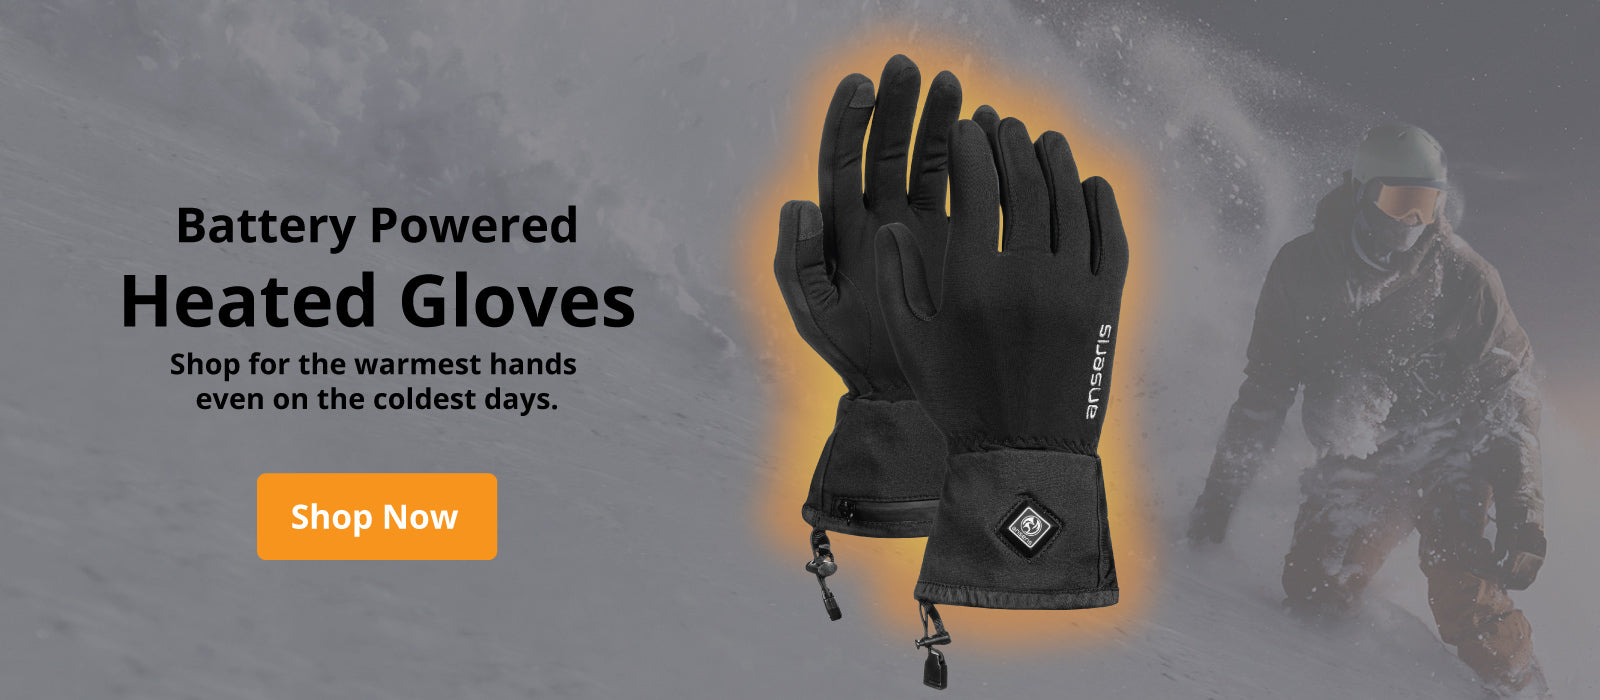 anseris heated glove liners feature full hand heating with heat activated by the press of a button